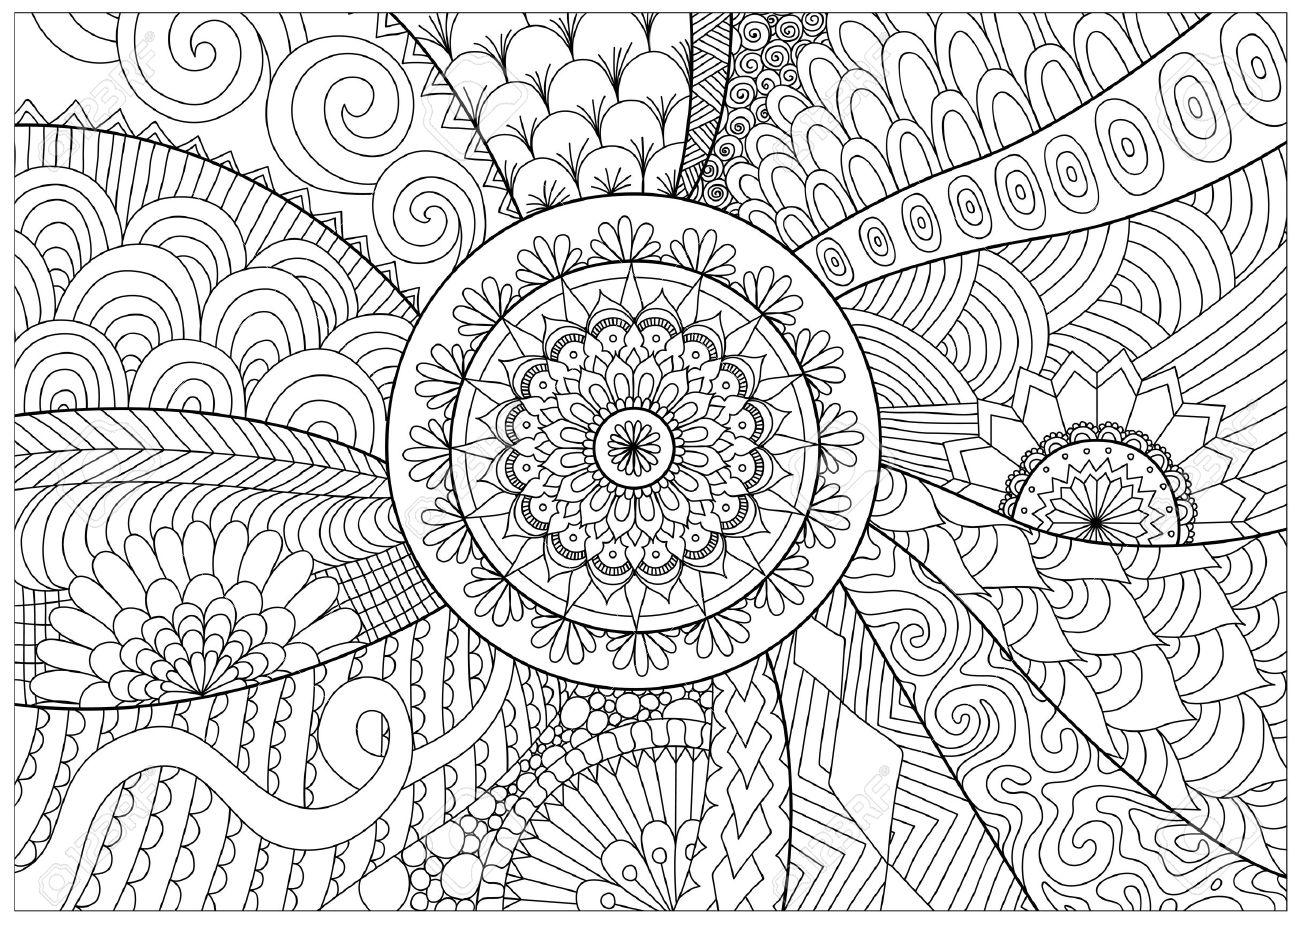 Flowers And Mandalas For Coloring Book For Adult Royalty Free ...